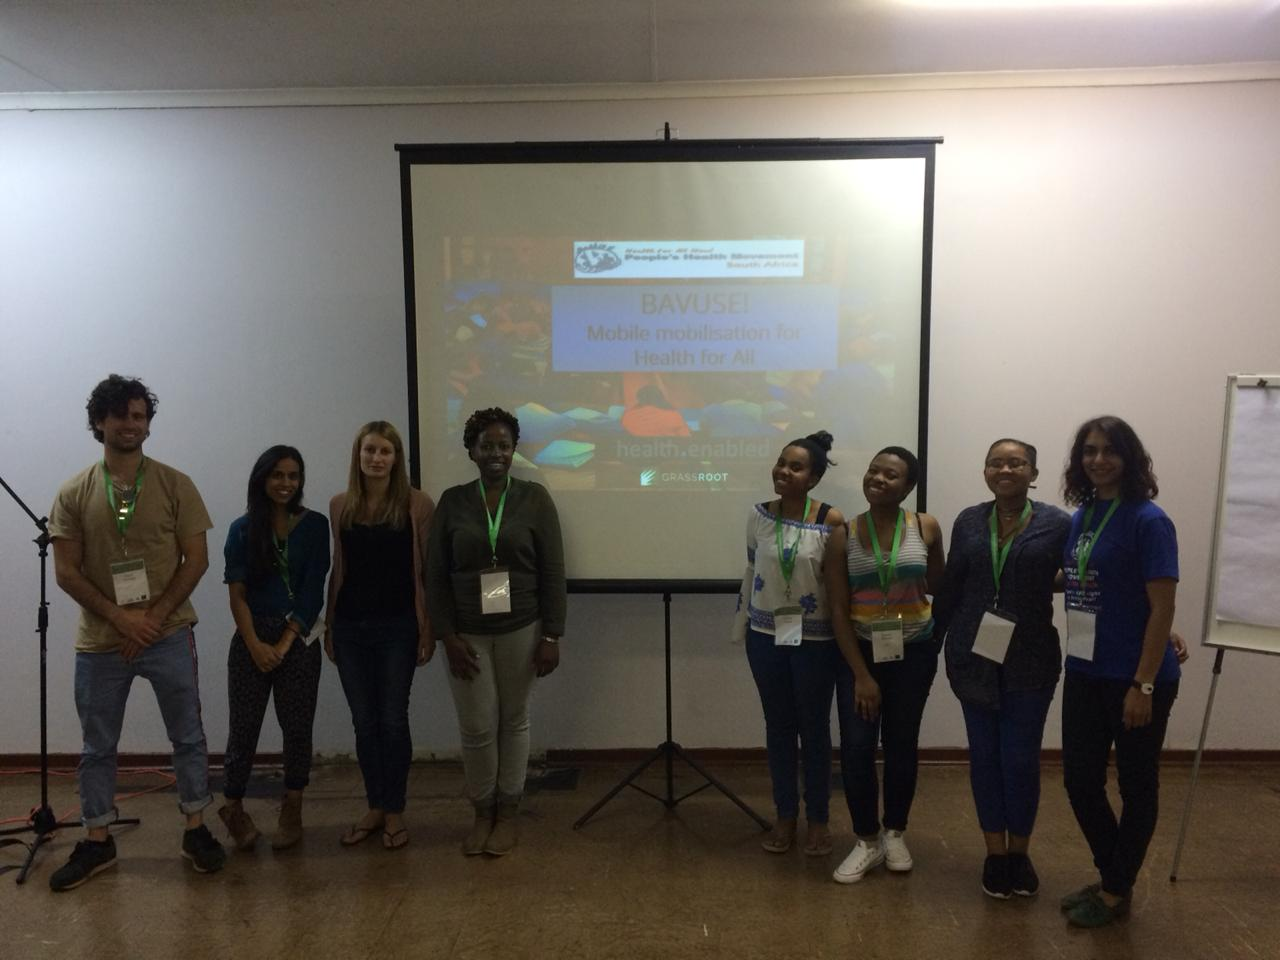 Mobile Mobilisation For A Peoples NHI Workshop Hosted By PHM SA 21 Sept 2018 Rural Health Conference